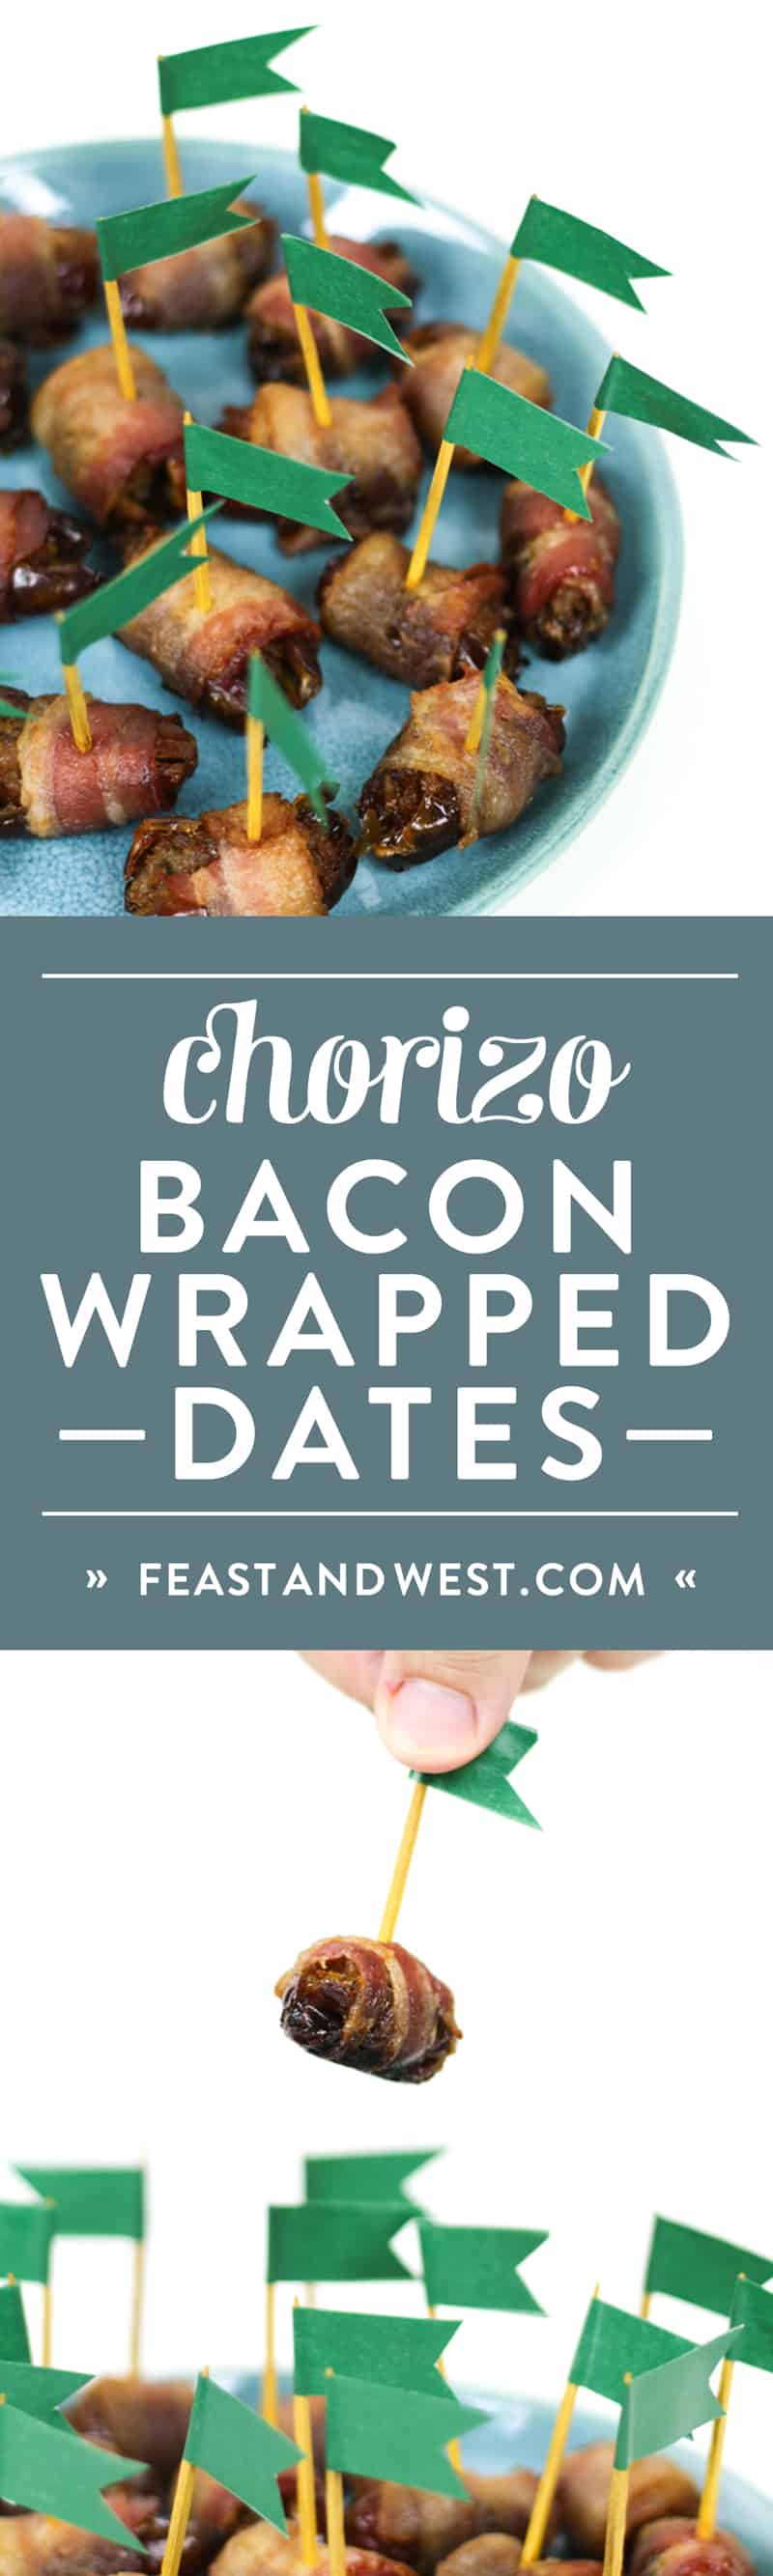 Make tailgating better with a batch of Chorizo Stuffed Bacon Wrapped Dates! They're an easy appetizer you can make for a crowd on game day or any gathering.(via feastandwest.com)